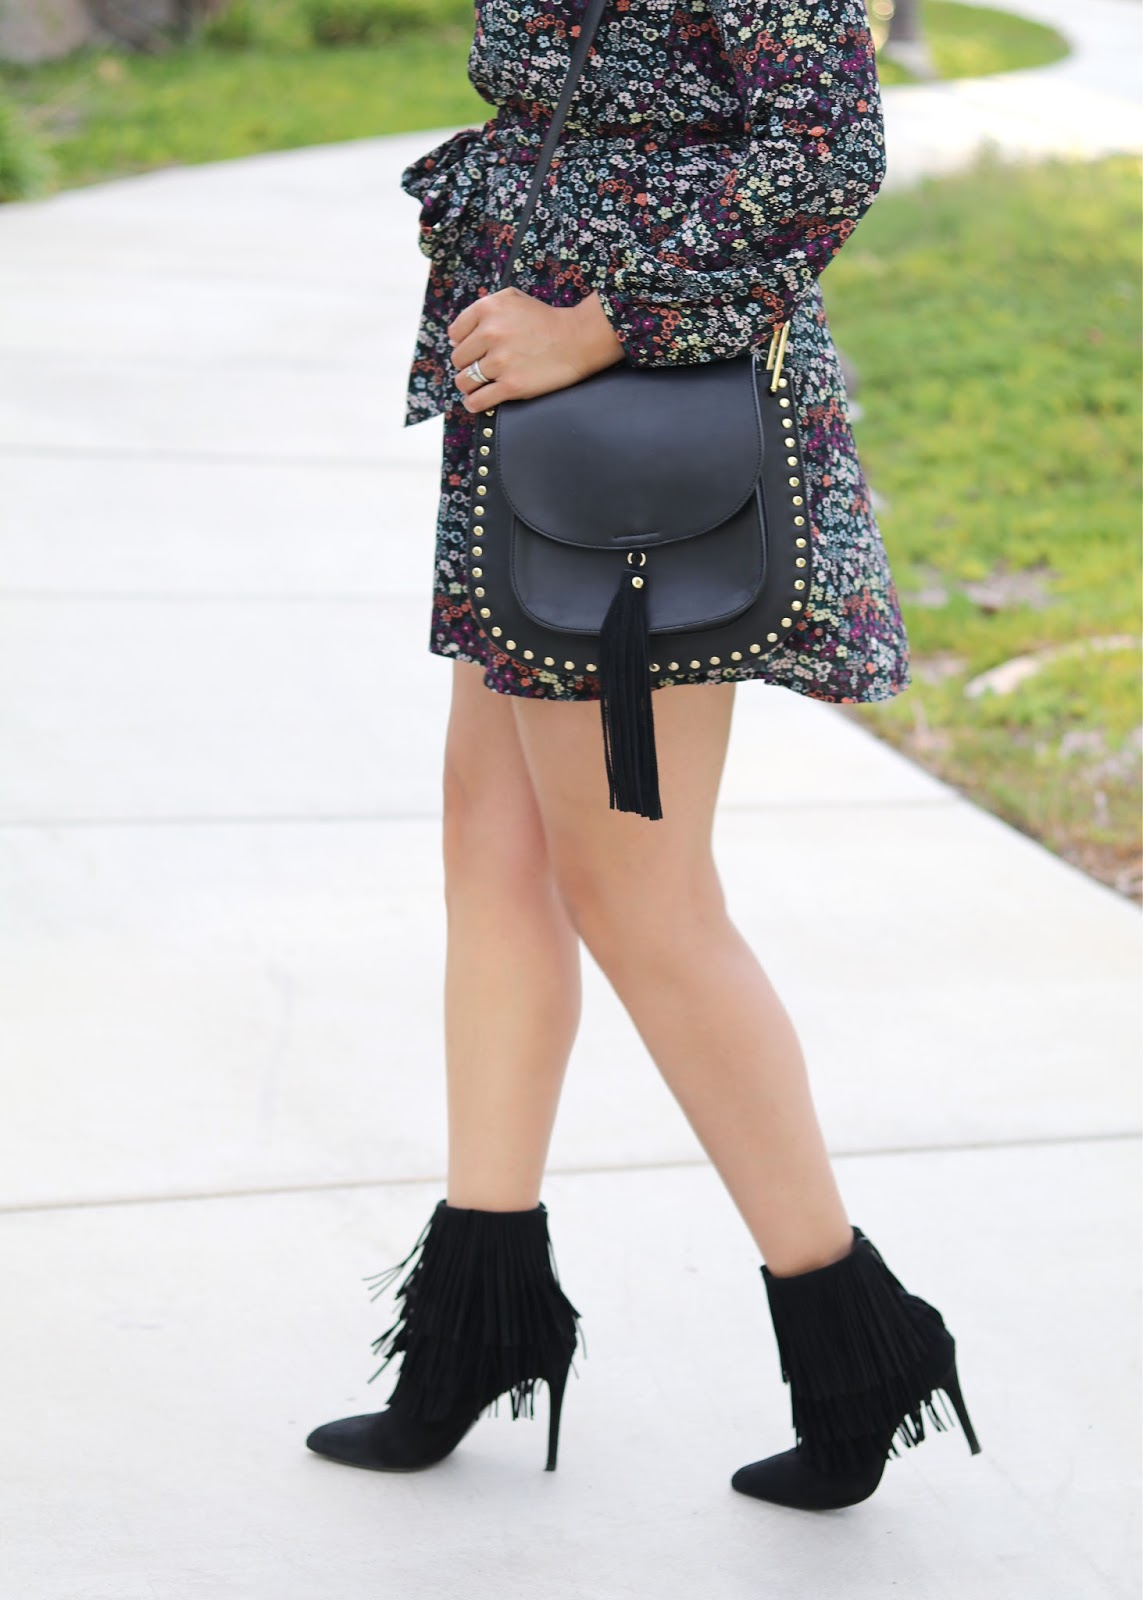 galian studded and fringe handbag, black studded crossbody bag, black fringe booties